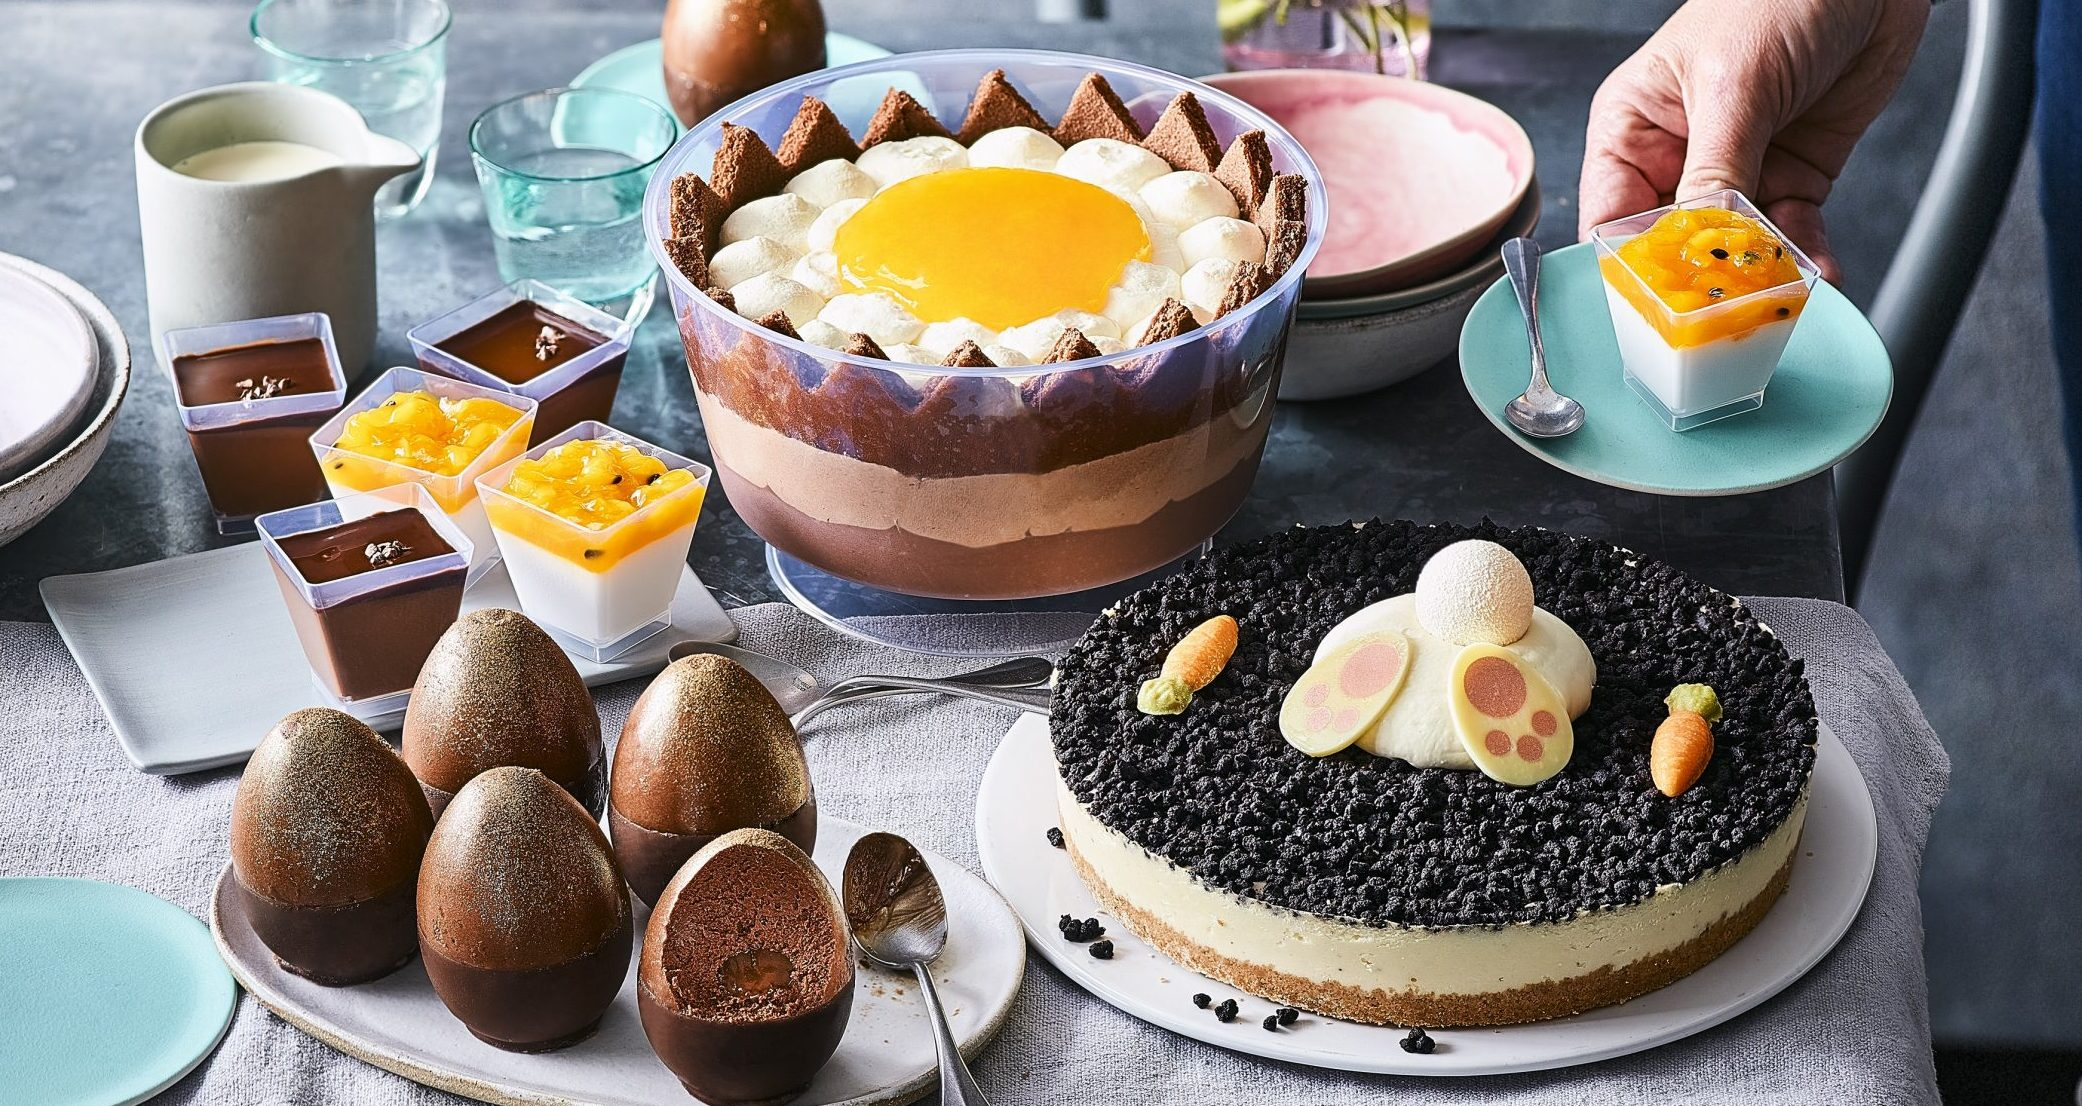 M&S launches its Easter desserts – including a triple chocolate 'cracked egg' trifle